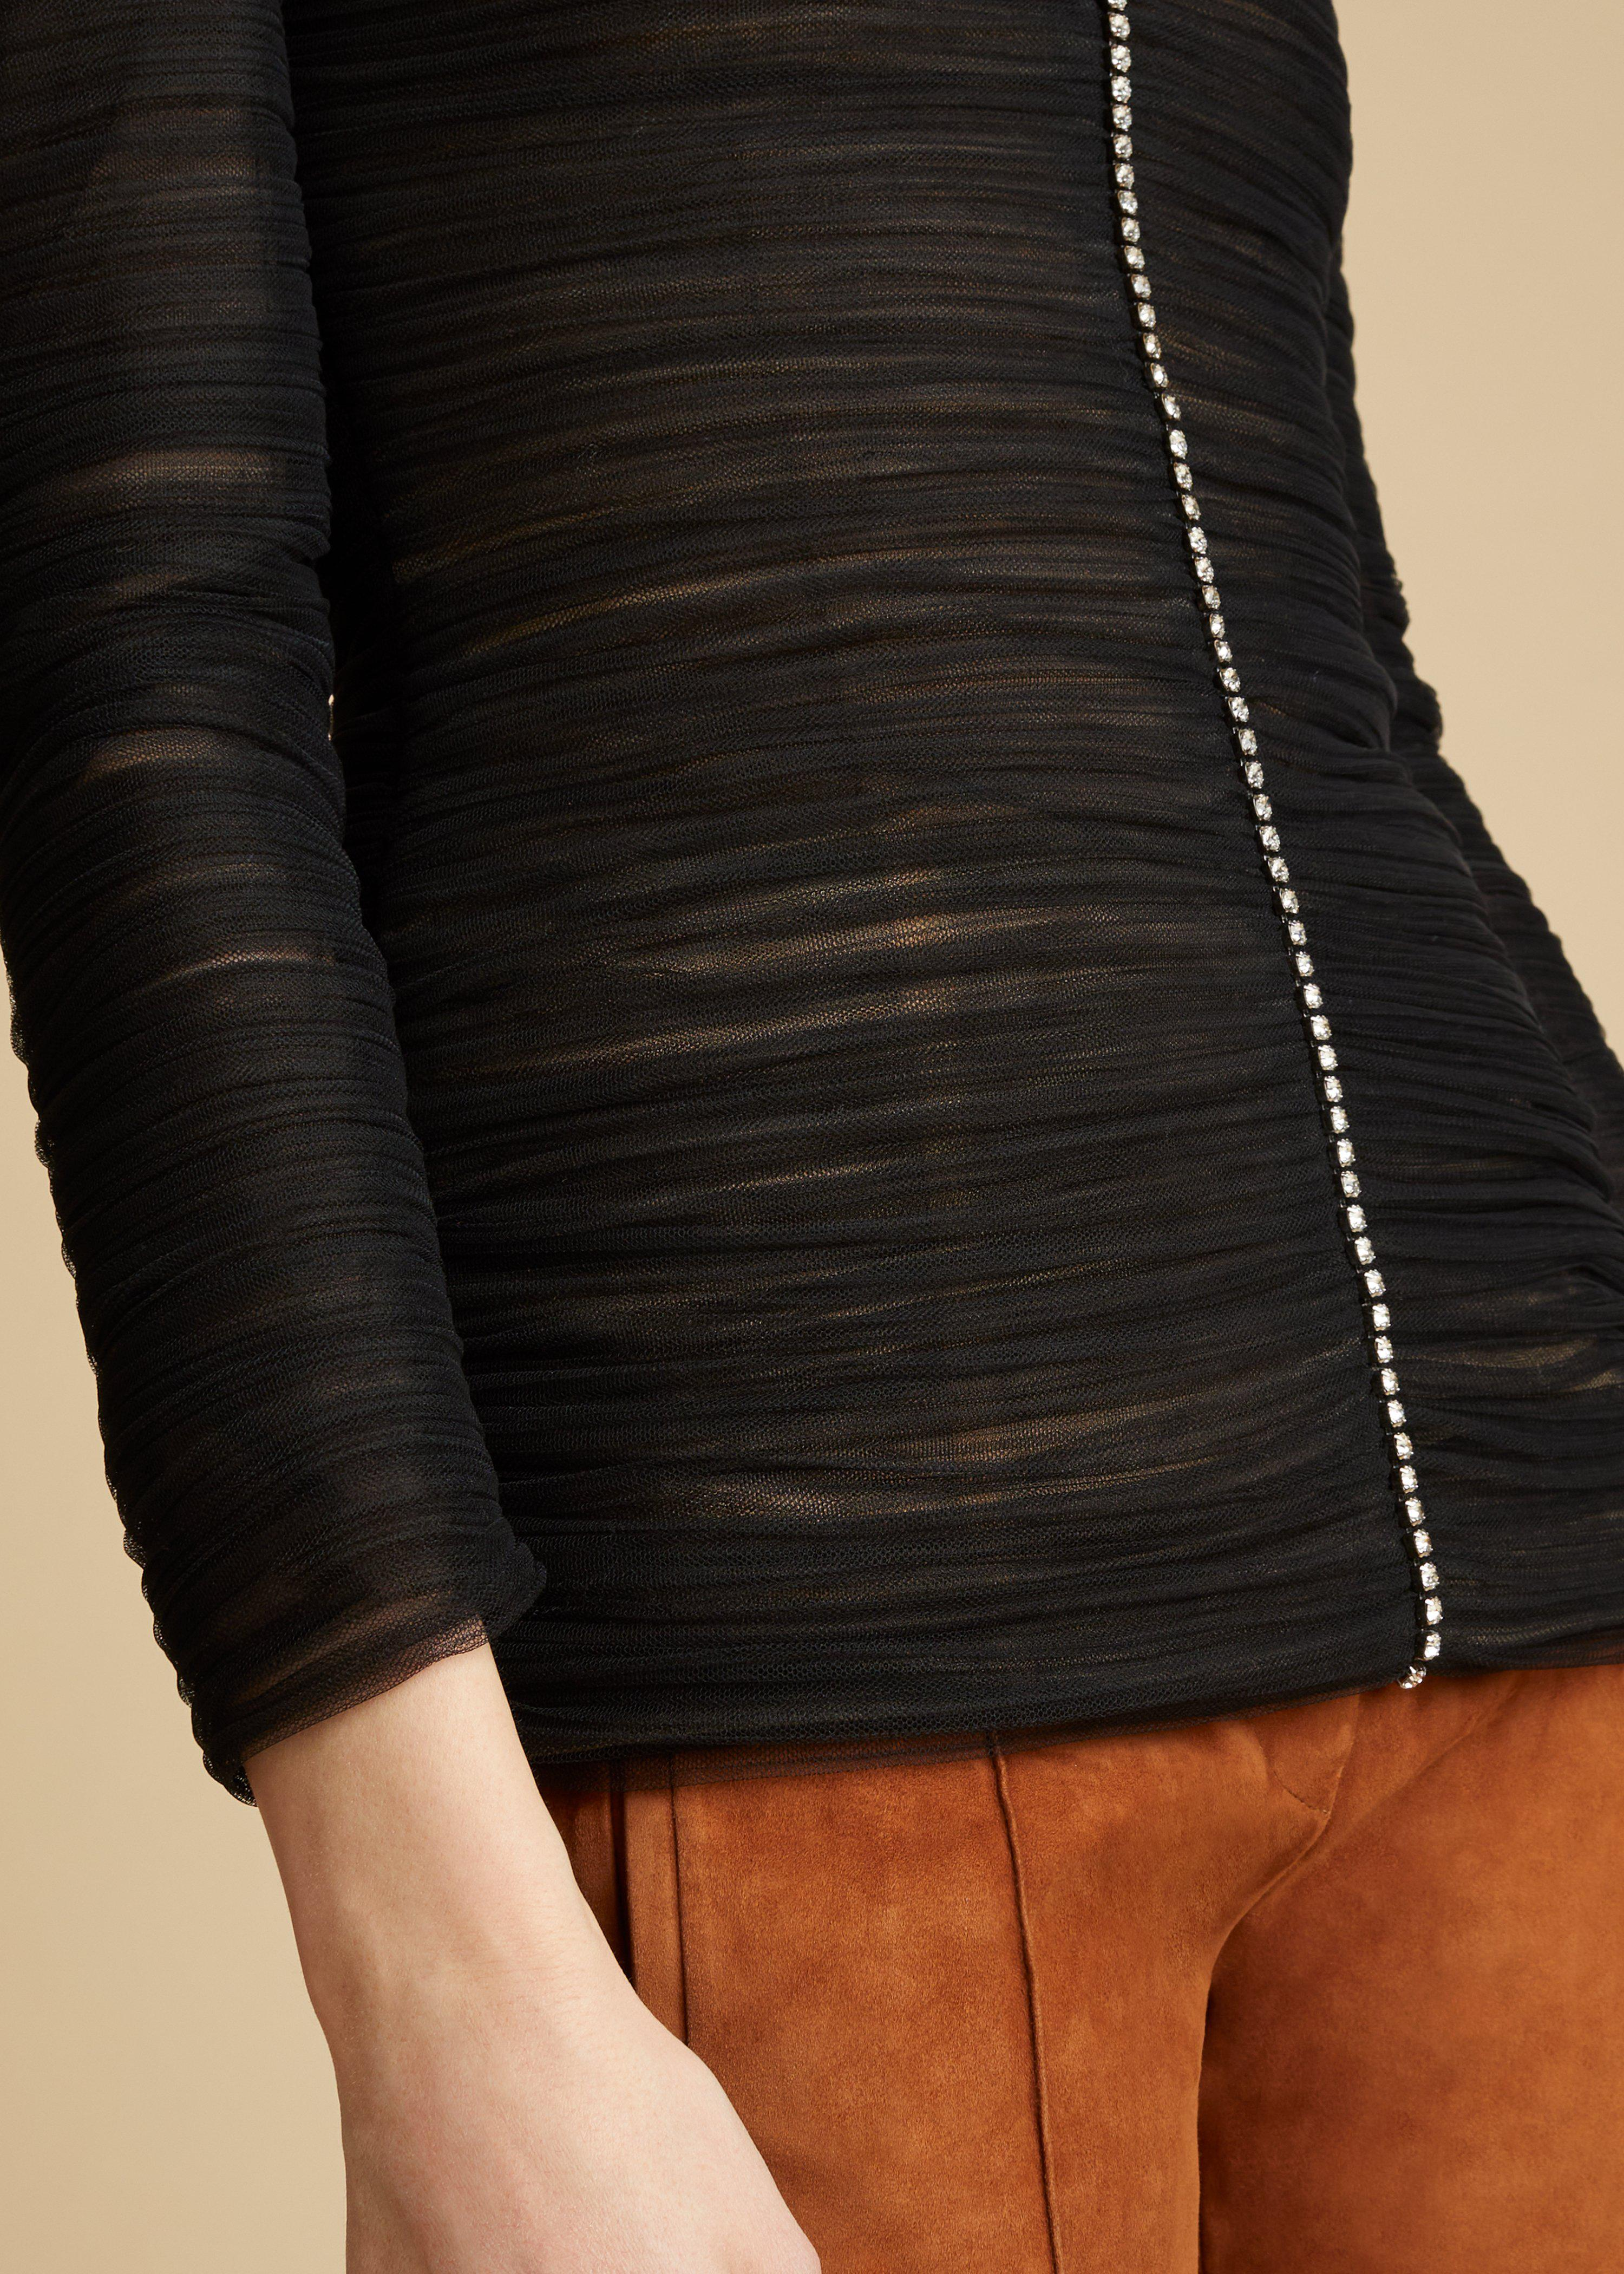 The Vienna Top in Black 6